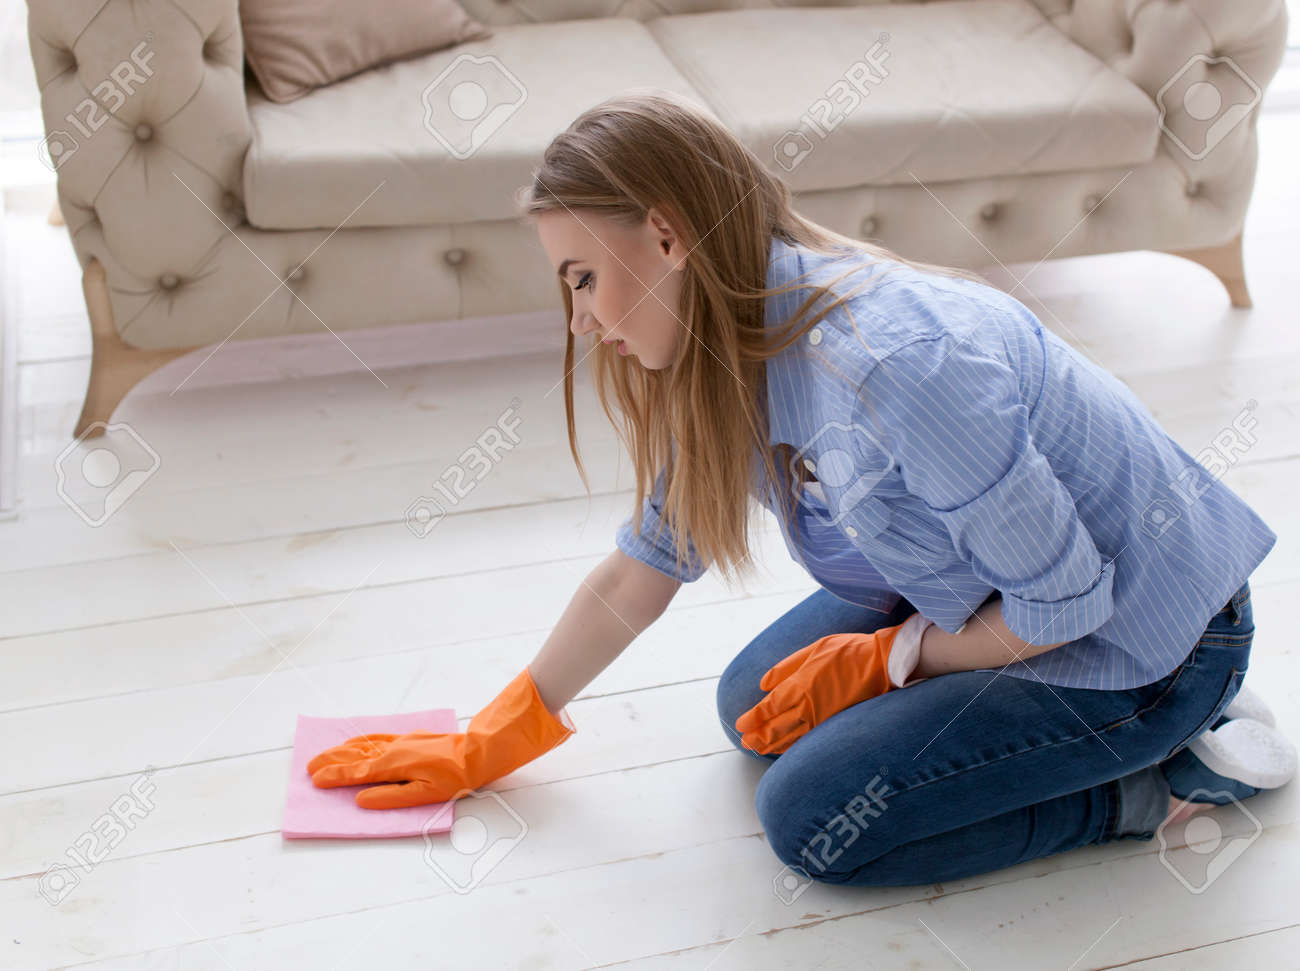 Attractive woman housewife cleans floor with brush - 75270607